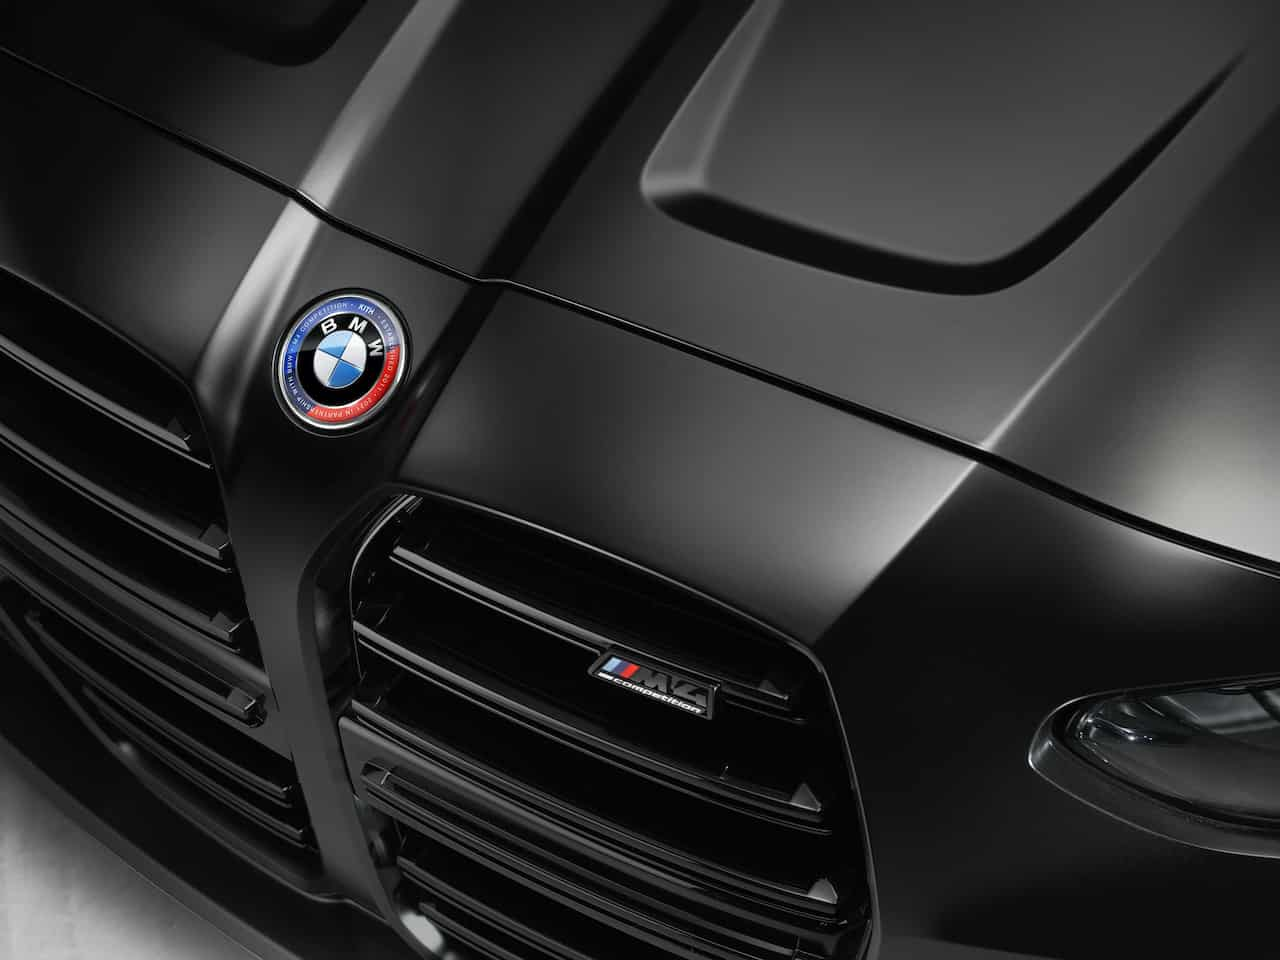 BMW, BMW offers limited-edition M4 with Kith design cues, ClassicCars.com Journal